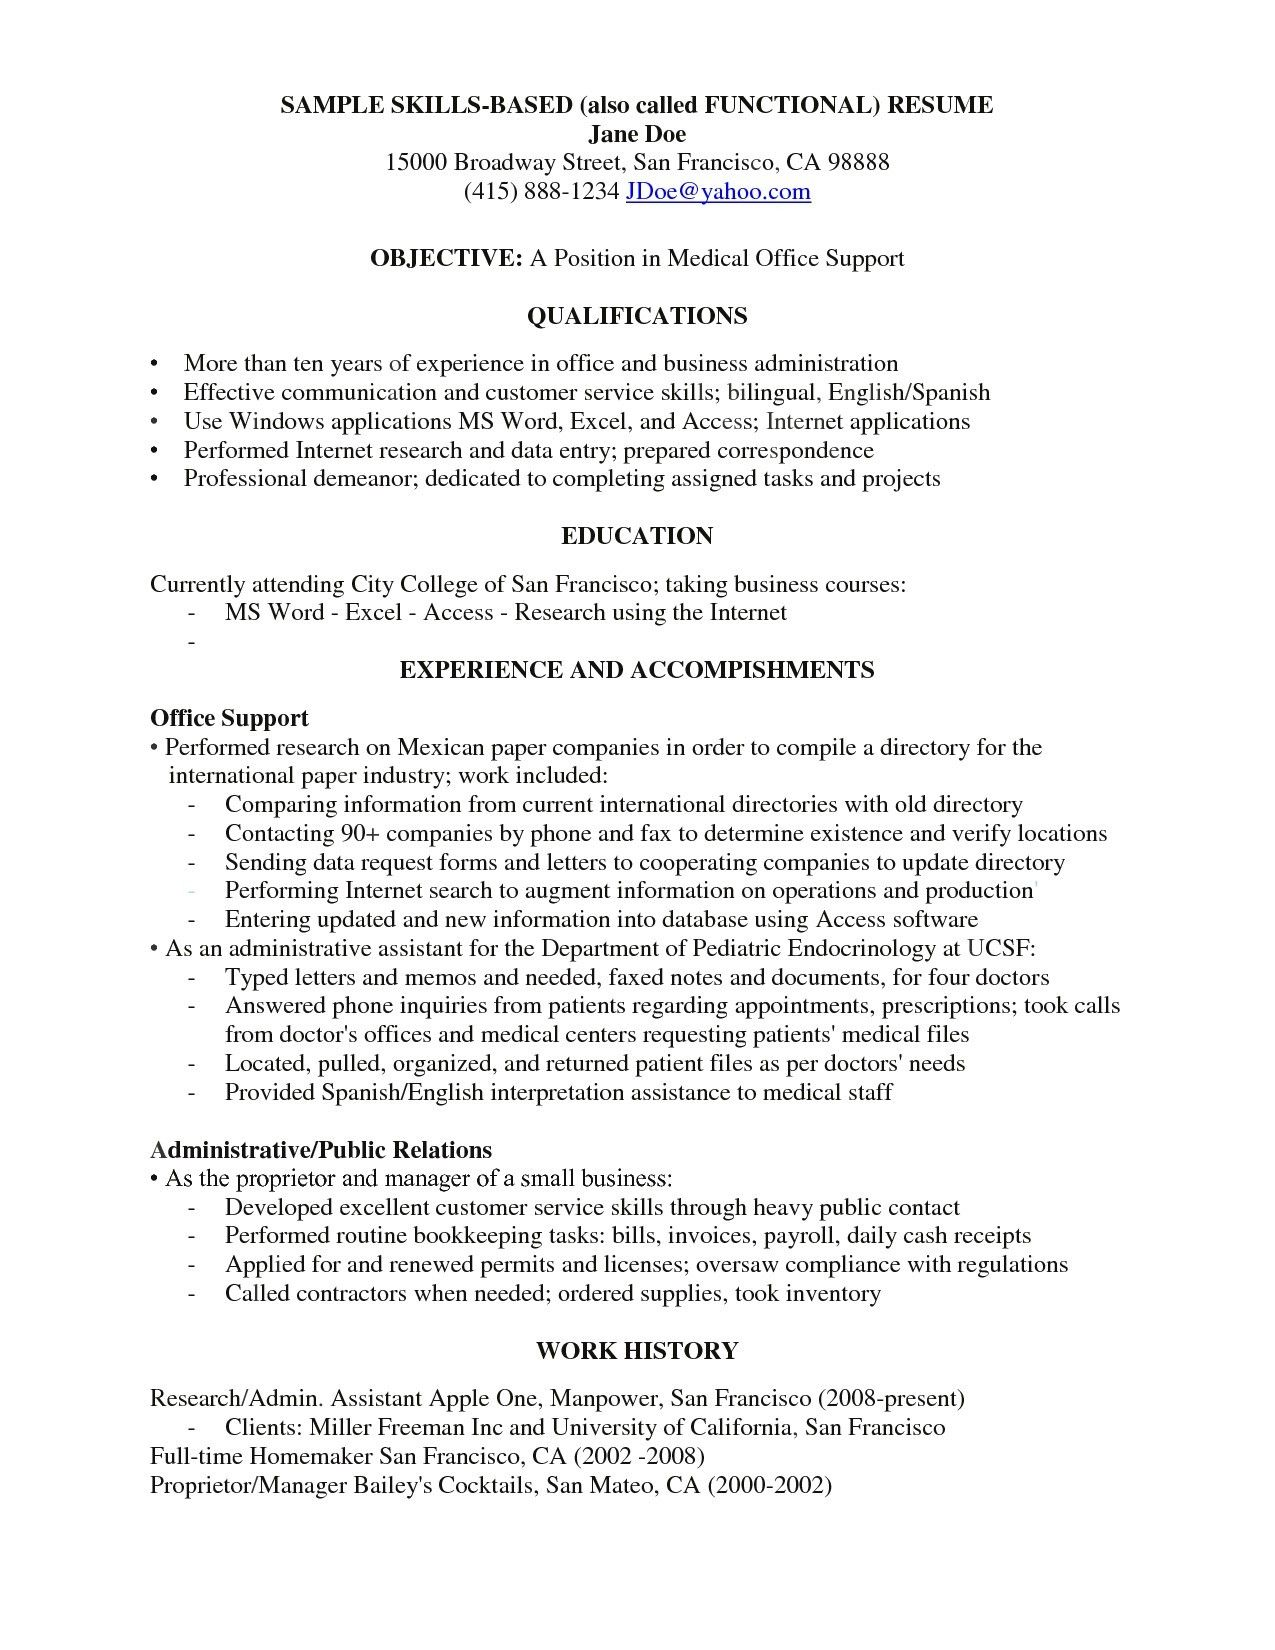 customer service manager resume fresh grapher profile description for word file free download waitress skills examples